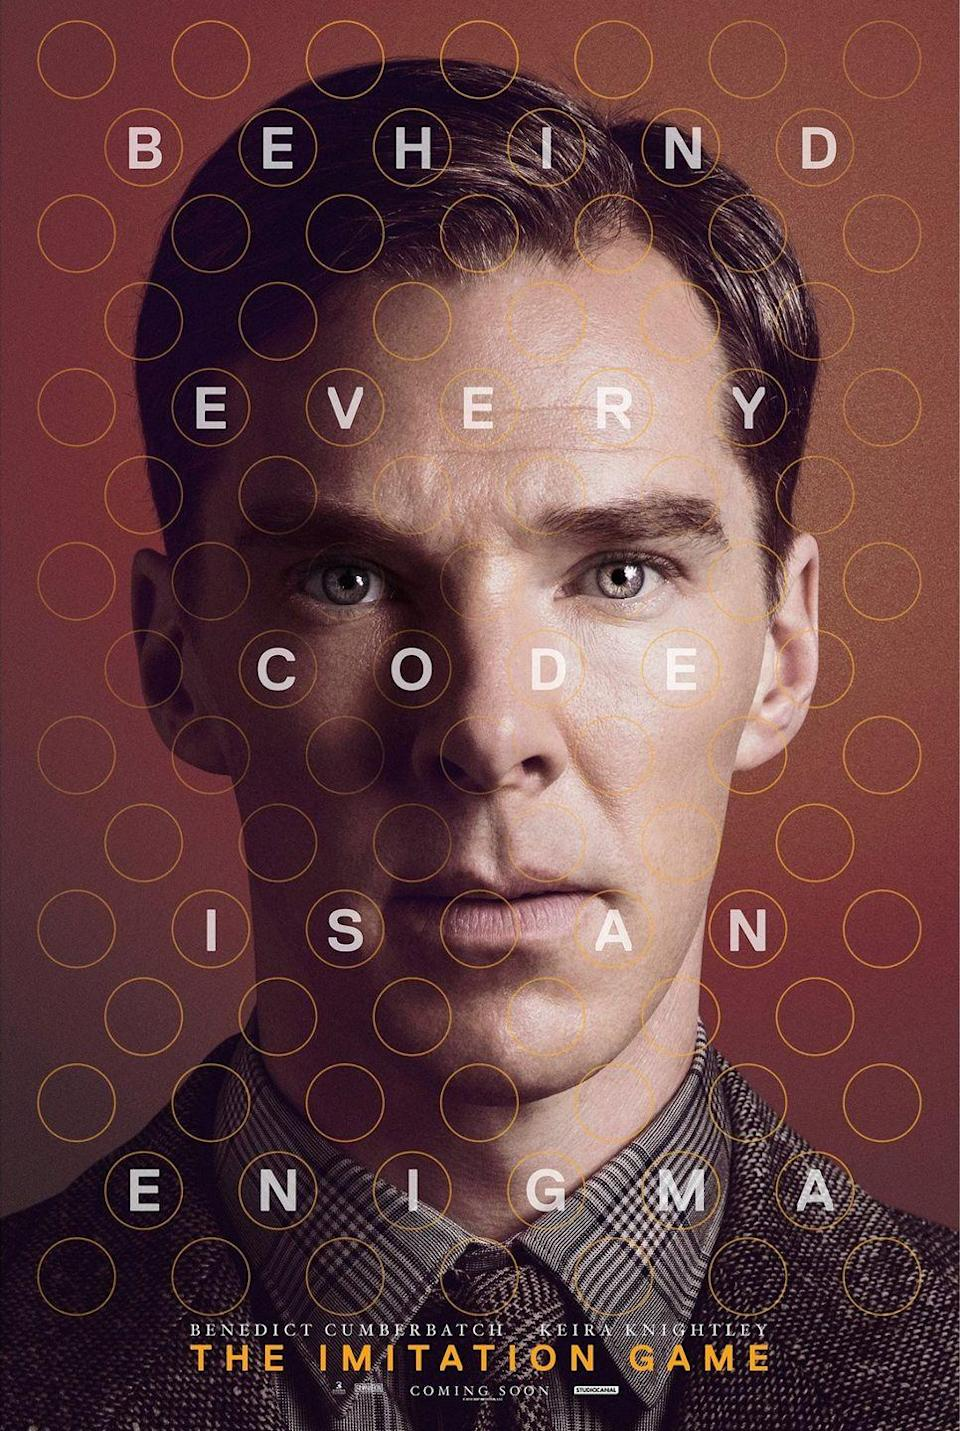 """<p><a class=""""link rapid-noclick-resp"""" href=""""https://www.amazon.com/The-Imitation-Game-Benedict-Cumberbatch/dp/B00R7FZ074?tag=syn-yahoo-20&ascsubtag=%5Bartid%7C10063.g.35716832%5Bsrc%7Cyahoo-us"""" rel=""""nofollow noopener"""" target=""""_blank"""" data-ylk=""""slk:Watch Now"""">Watch Now</a></p><p><em>The Imitation Game</em> charts how Alan Turing's game-changing innovations helped the Allies win the war—then, tragically, shows his country would persecute him anyway.</p>"""